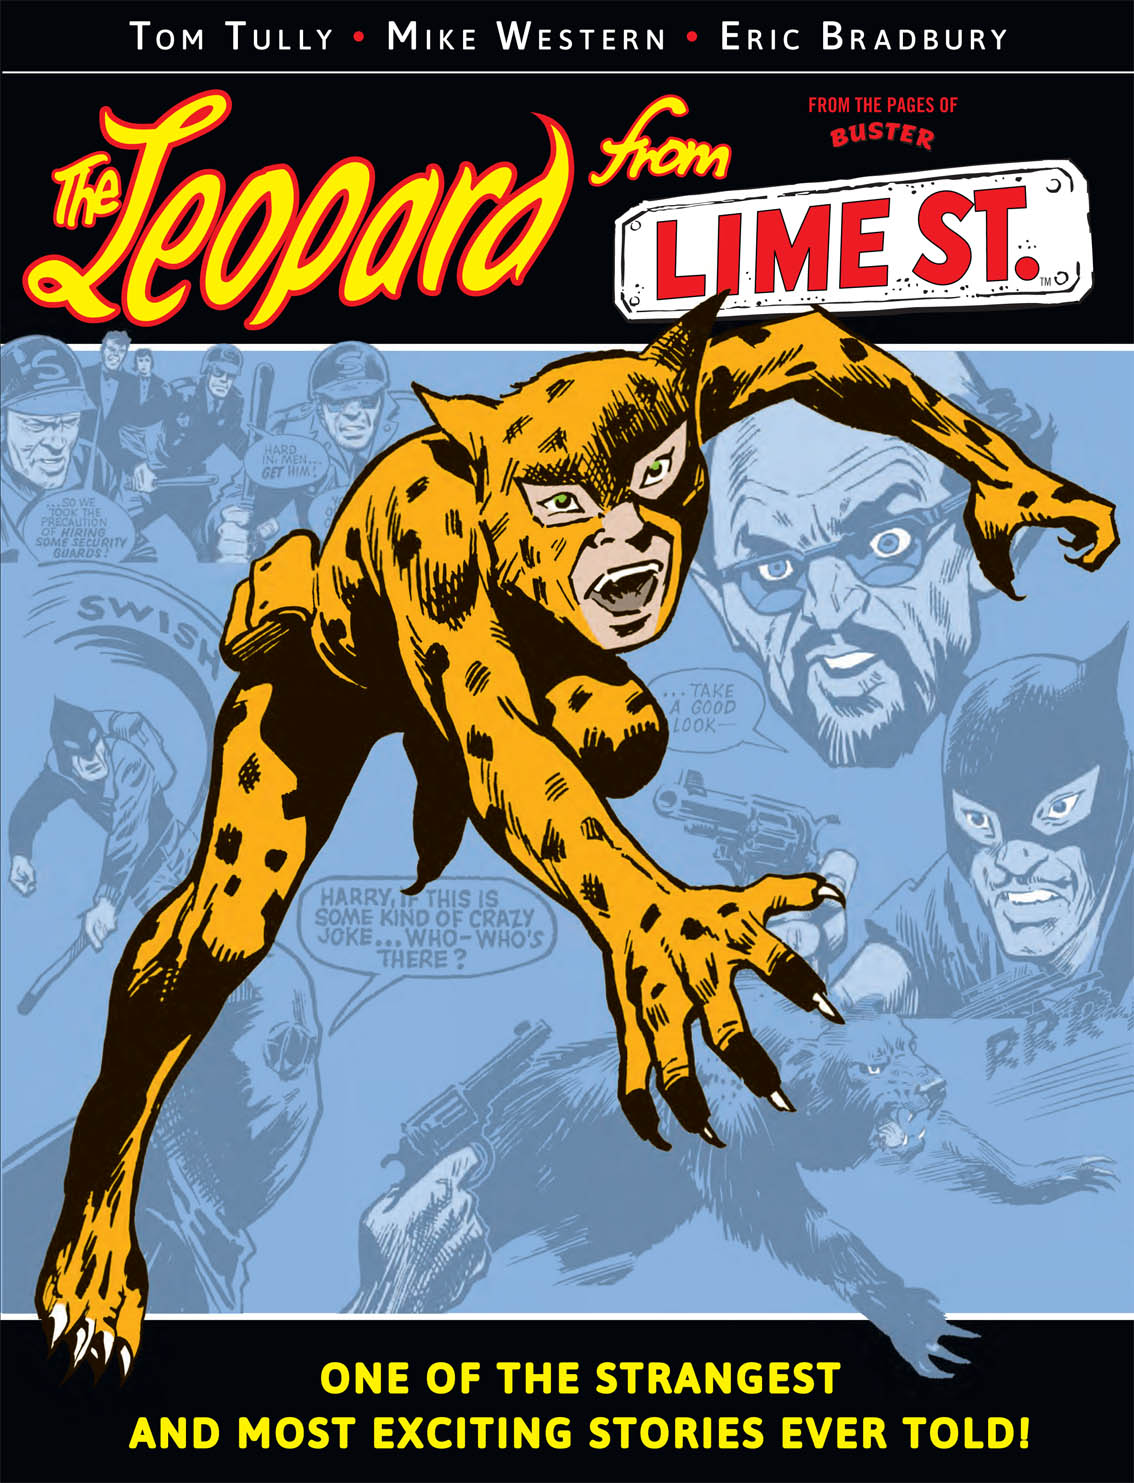 The Leopard From Lime St.